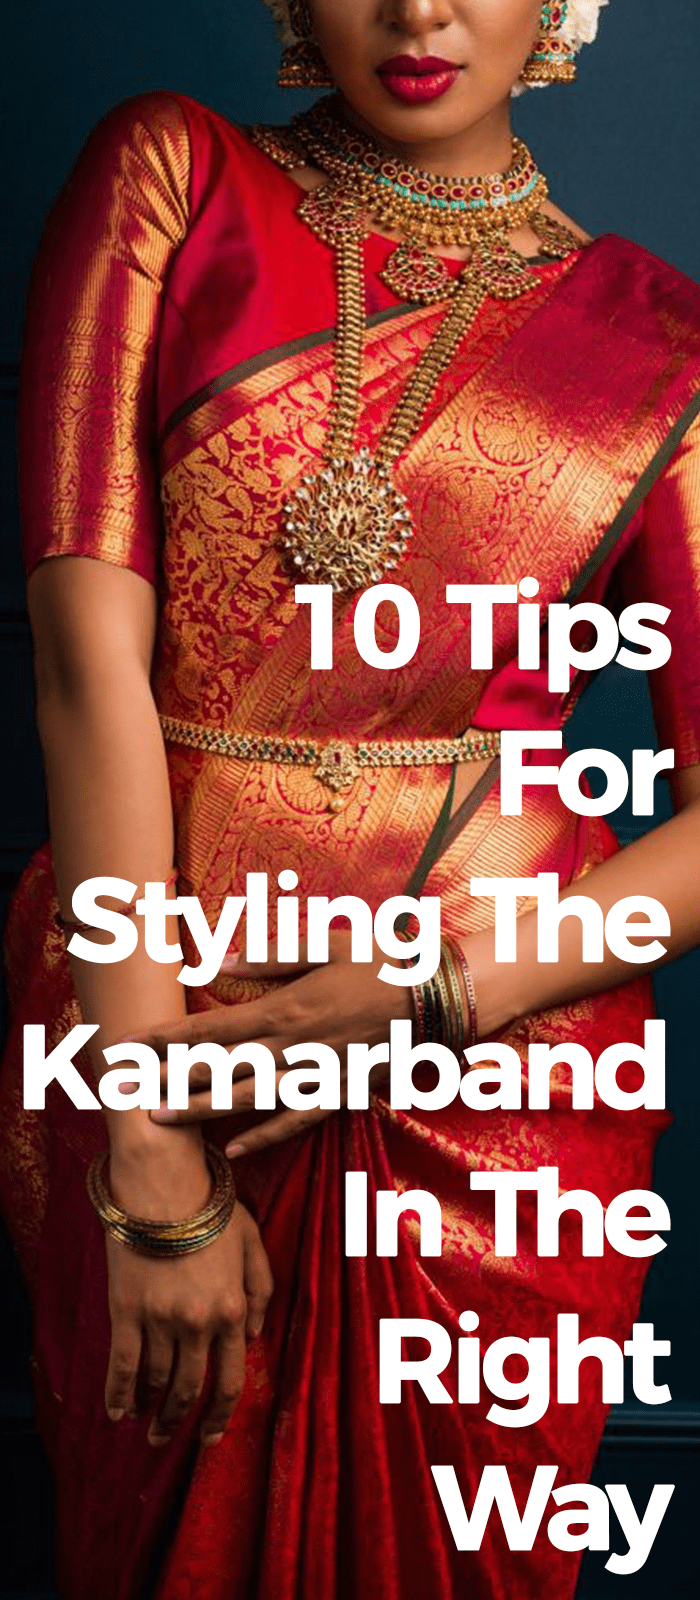 10 Tip For Styling The Kamarband In The Right Way